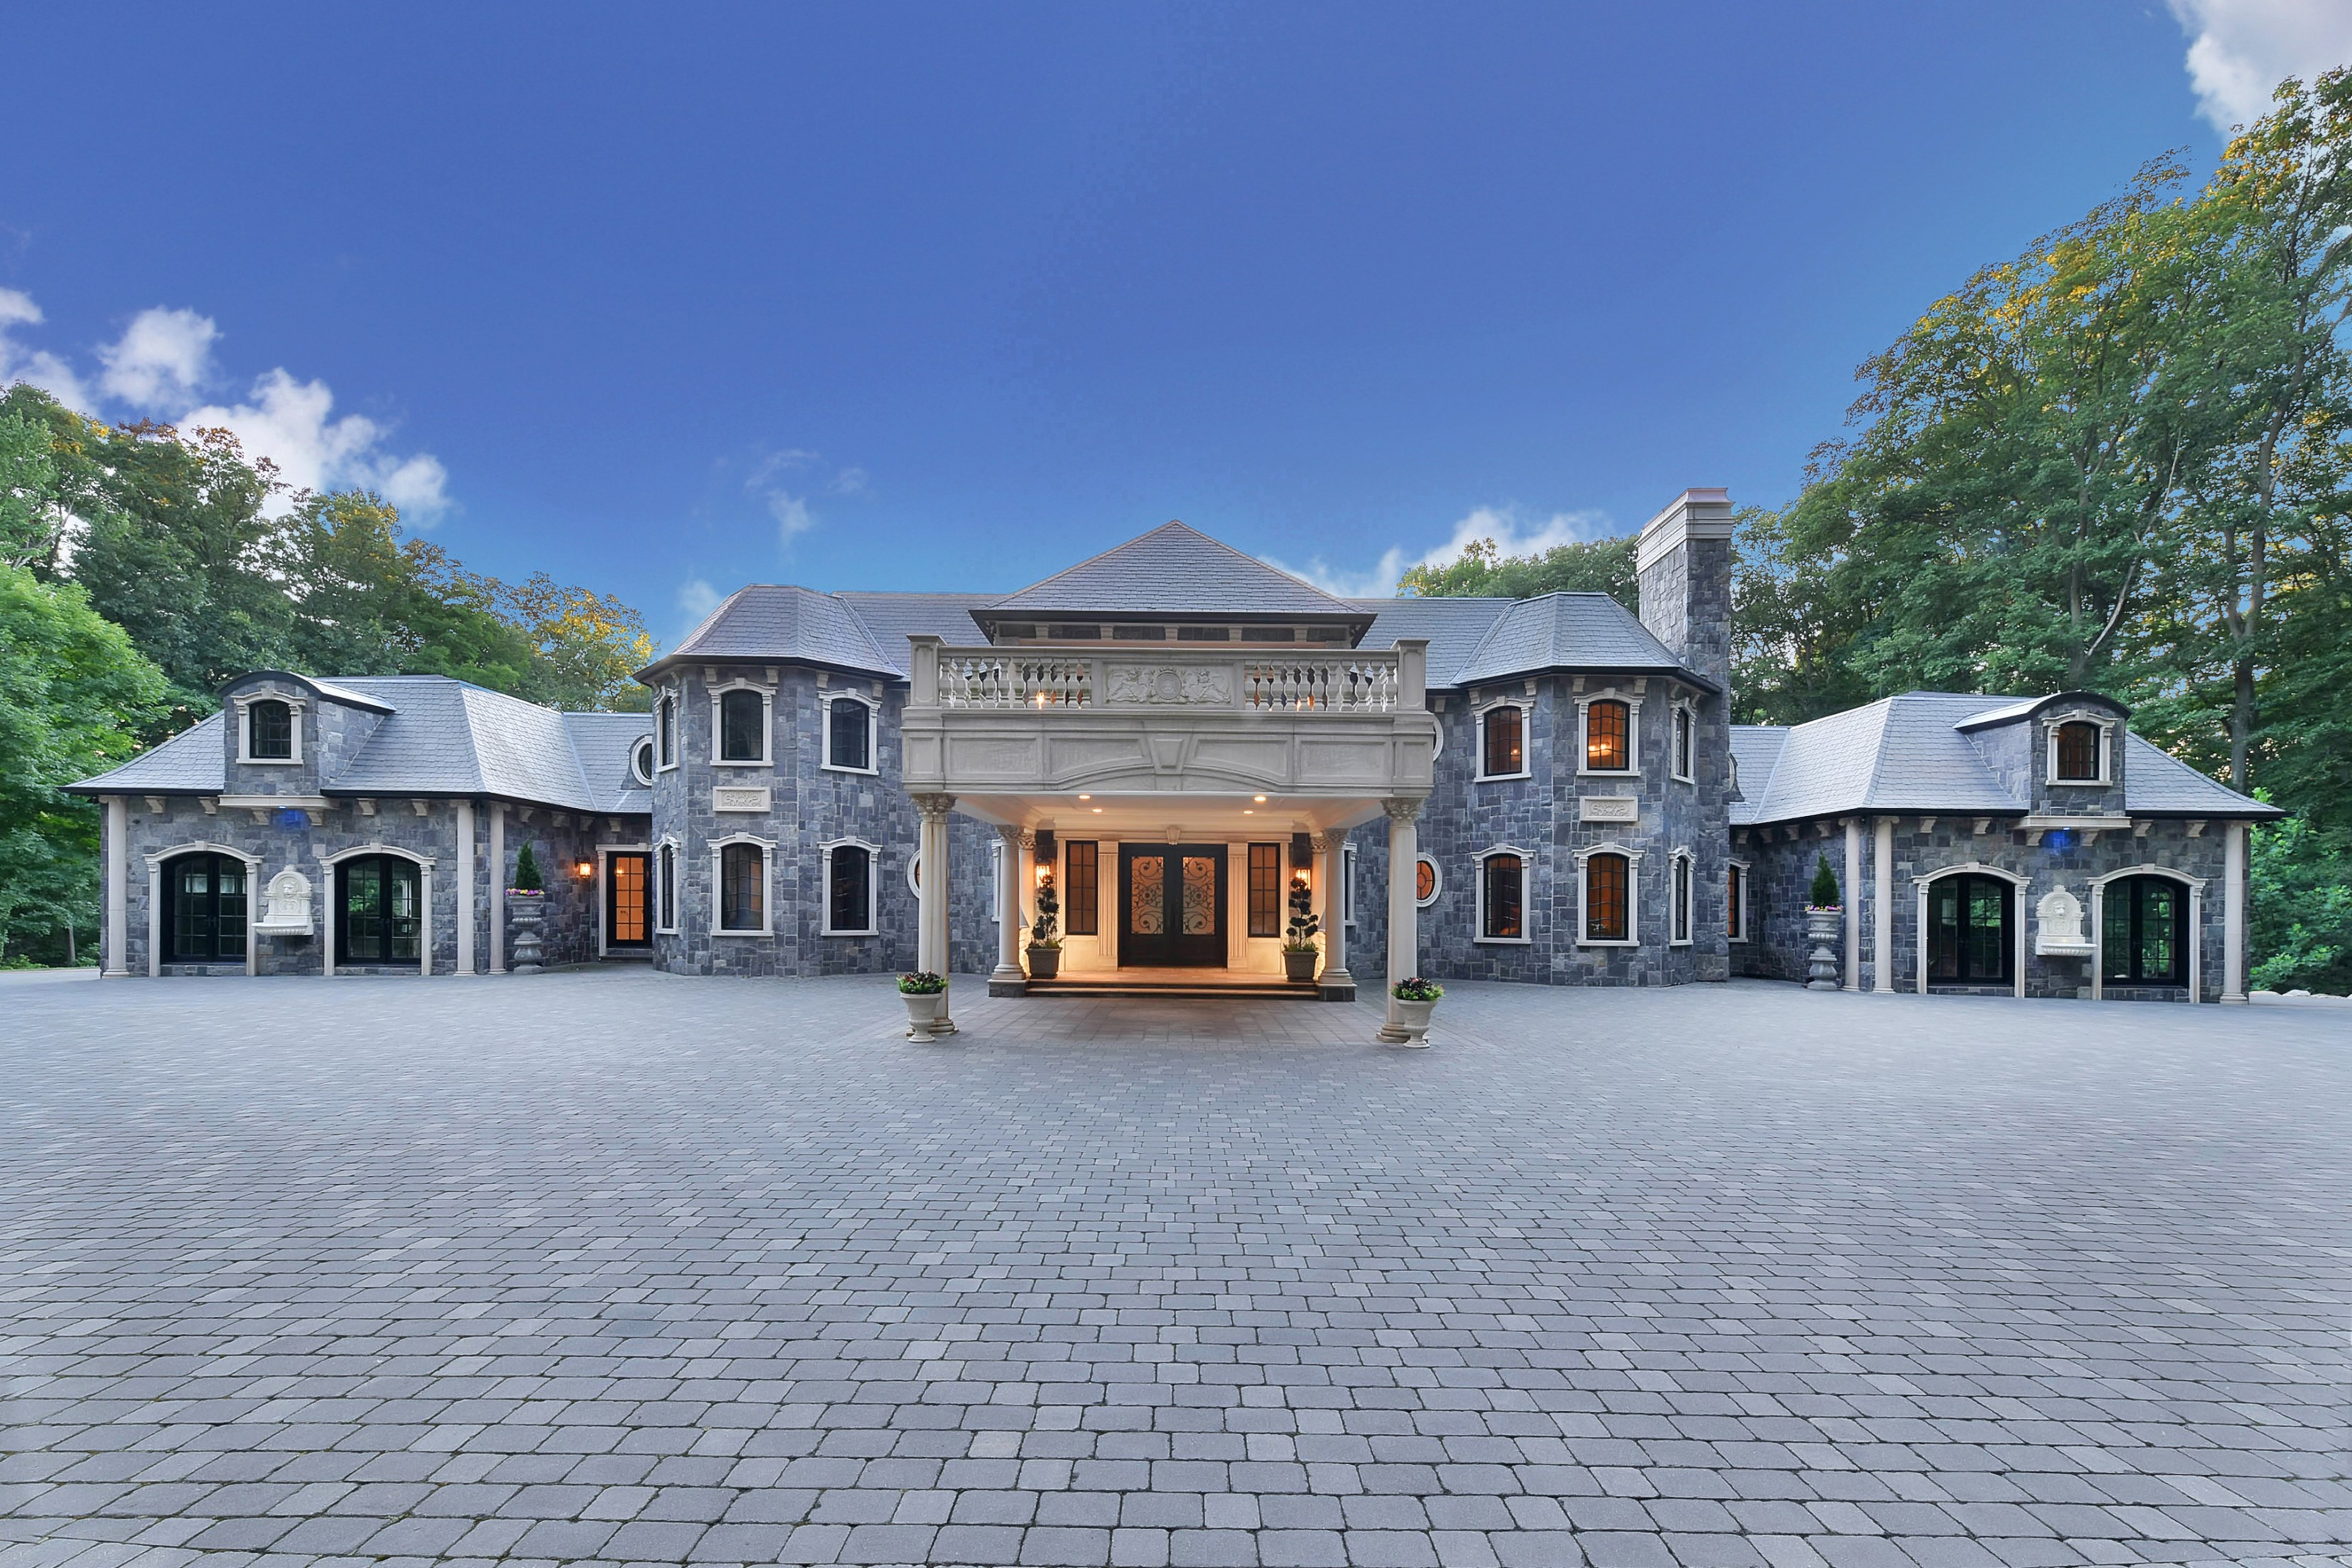 独户住宅 为 销售 在 Stone Palace in Saddle River 105 Chestnut Ridge Road 马鞍河, 07458 美国